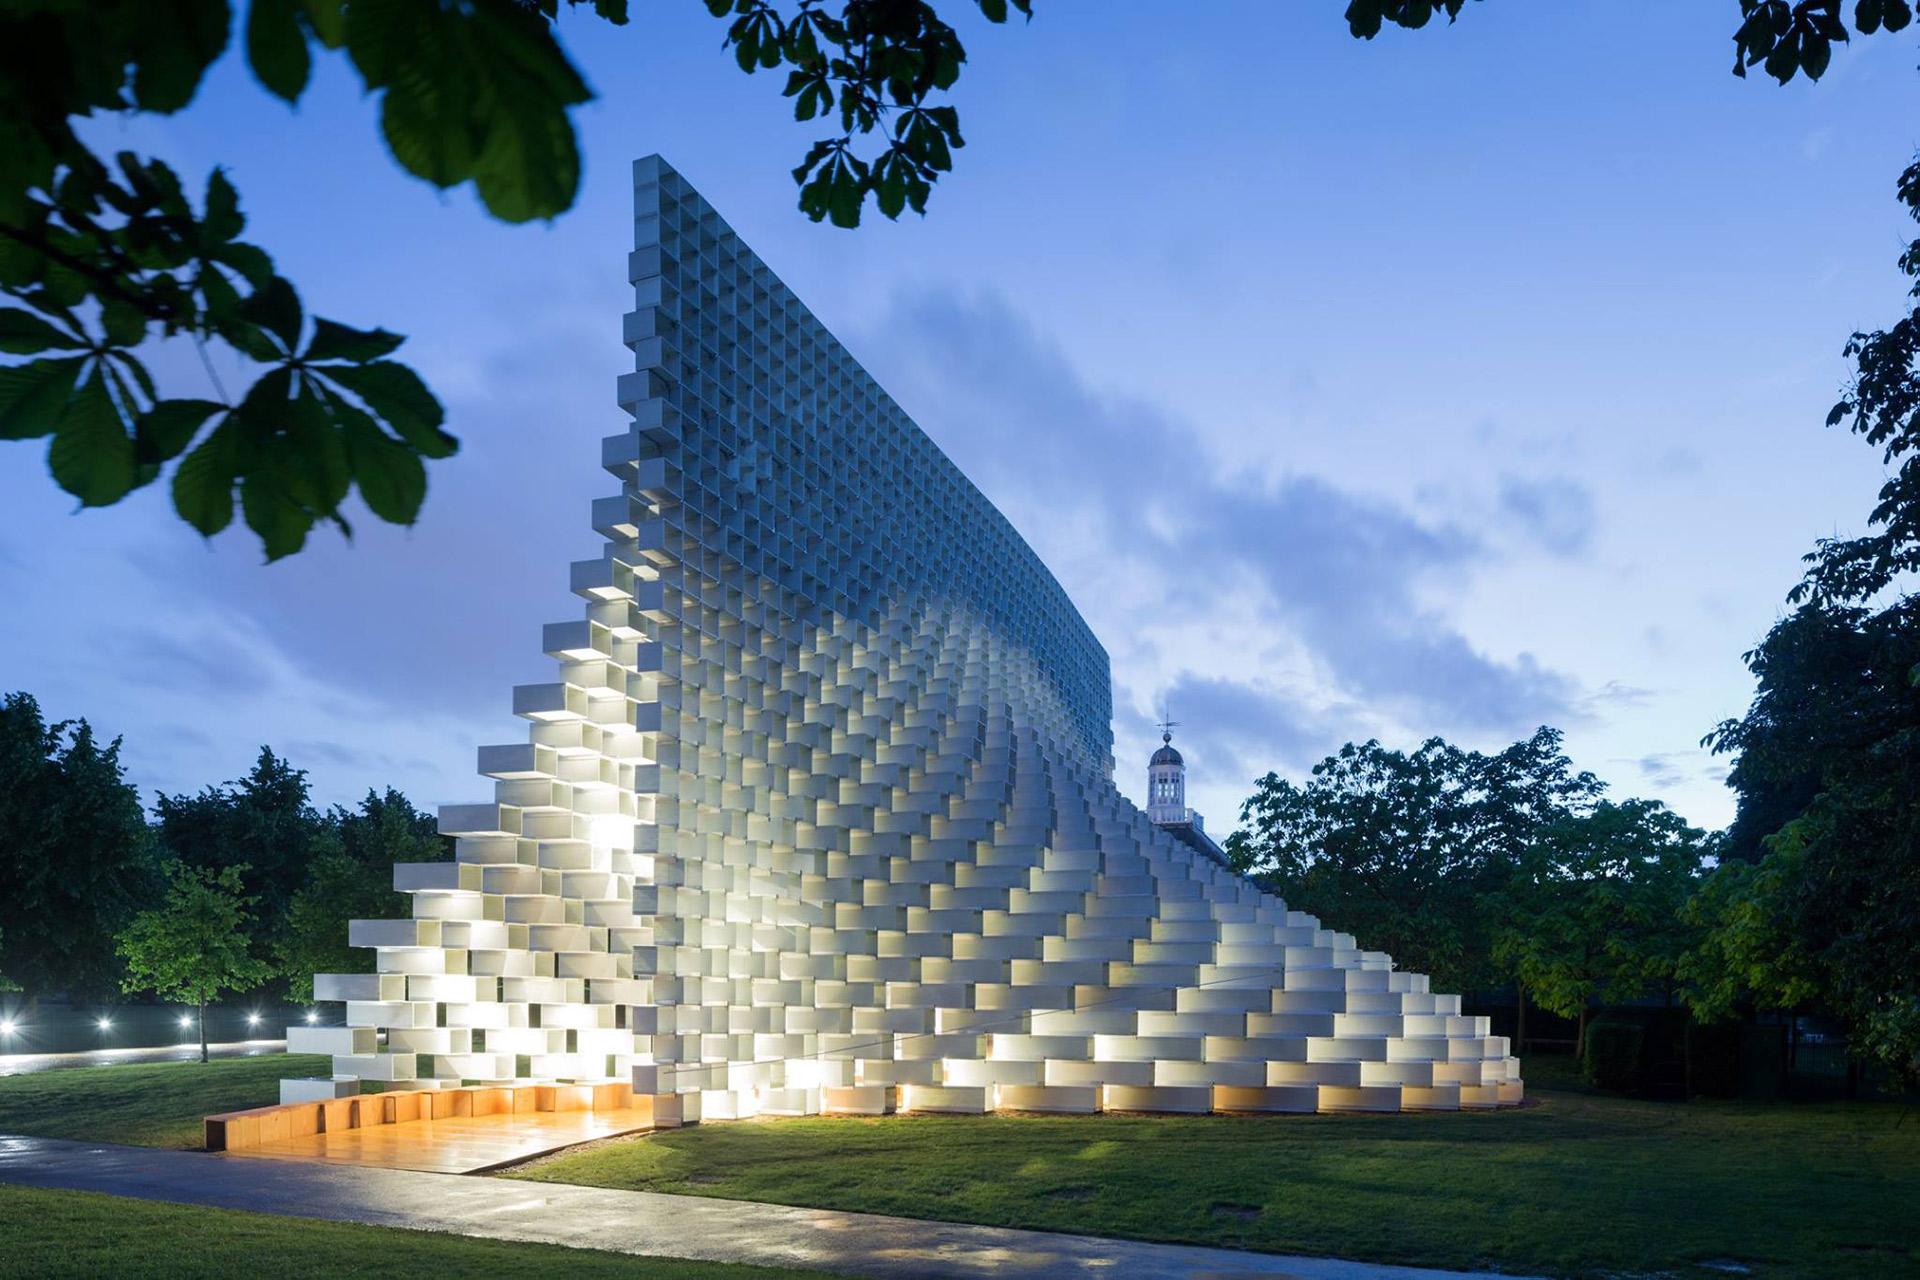 Bjarke Ingels Group's Unzipped Pavilion in Toronto and Vancouver